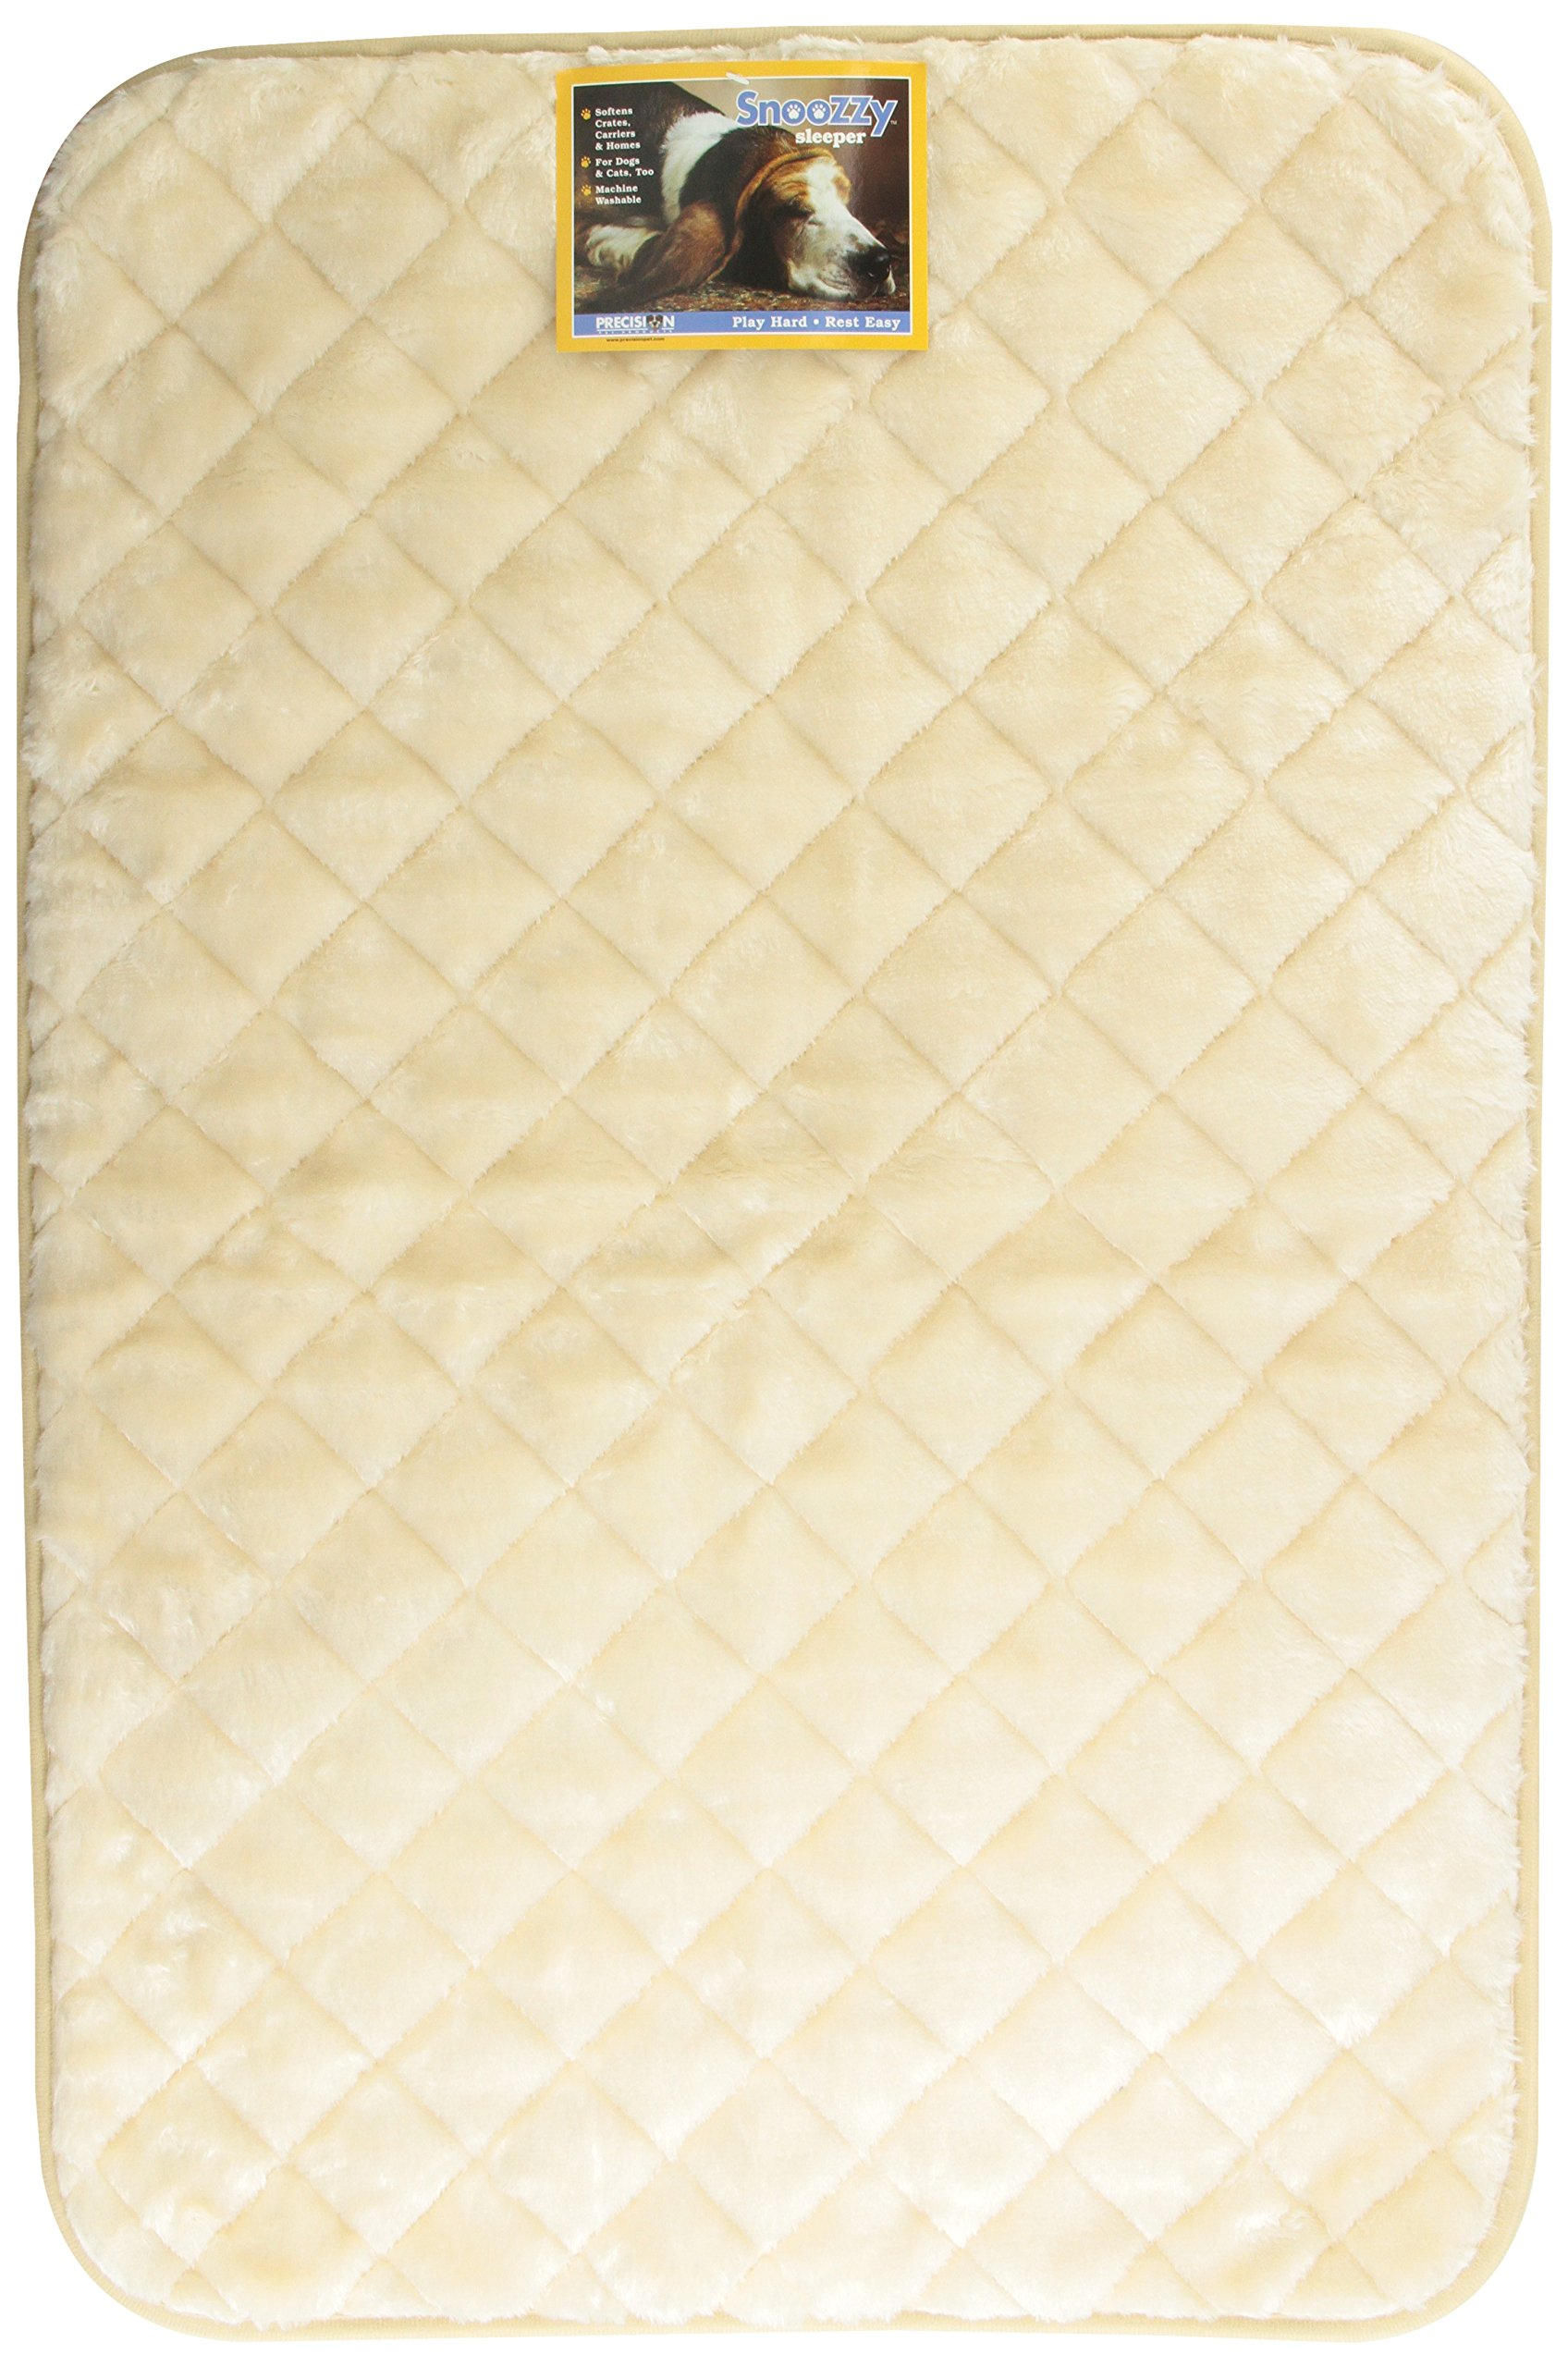 Precision Pet 4000 SnooZZy Sleeper Bed, 35 by 23-Inch, Natural